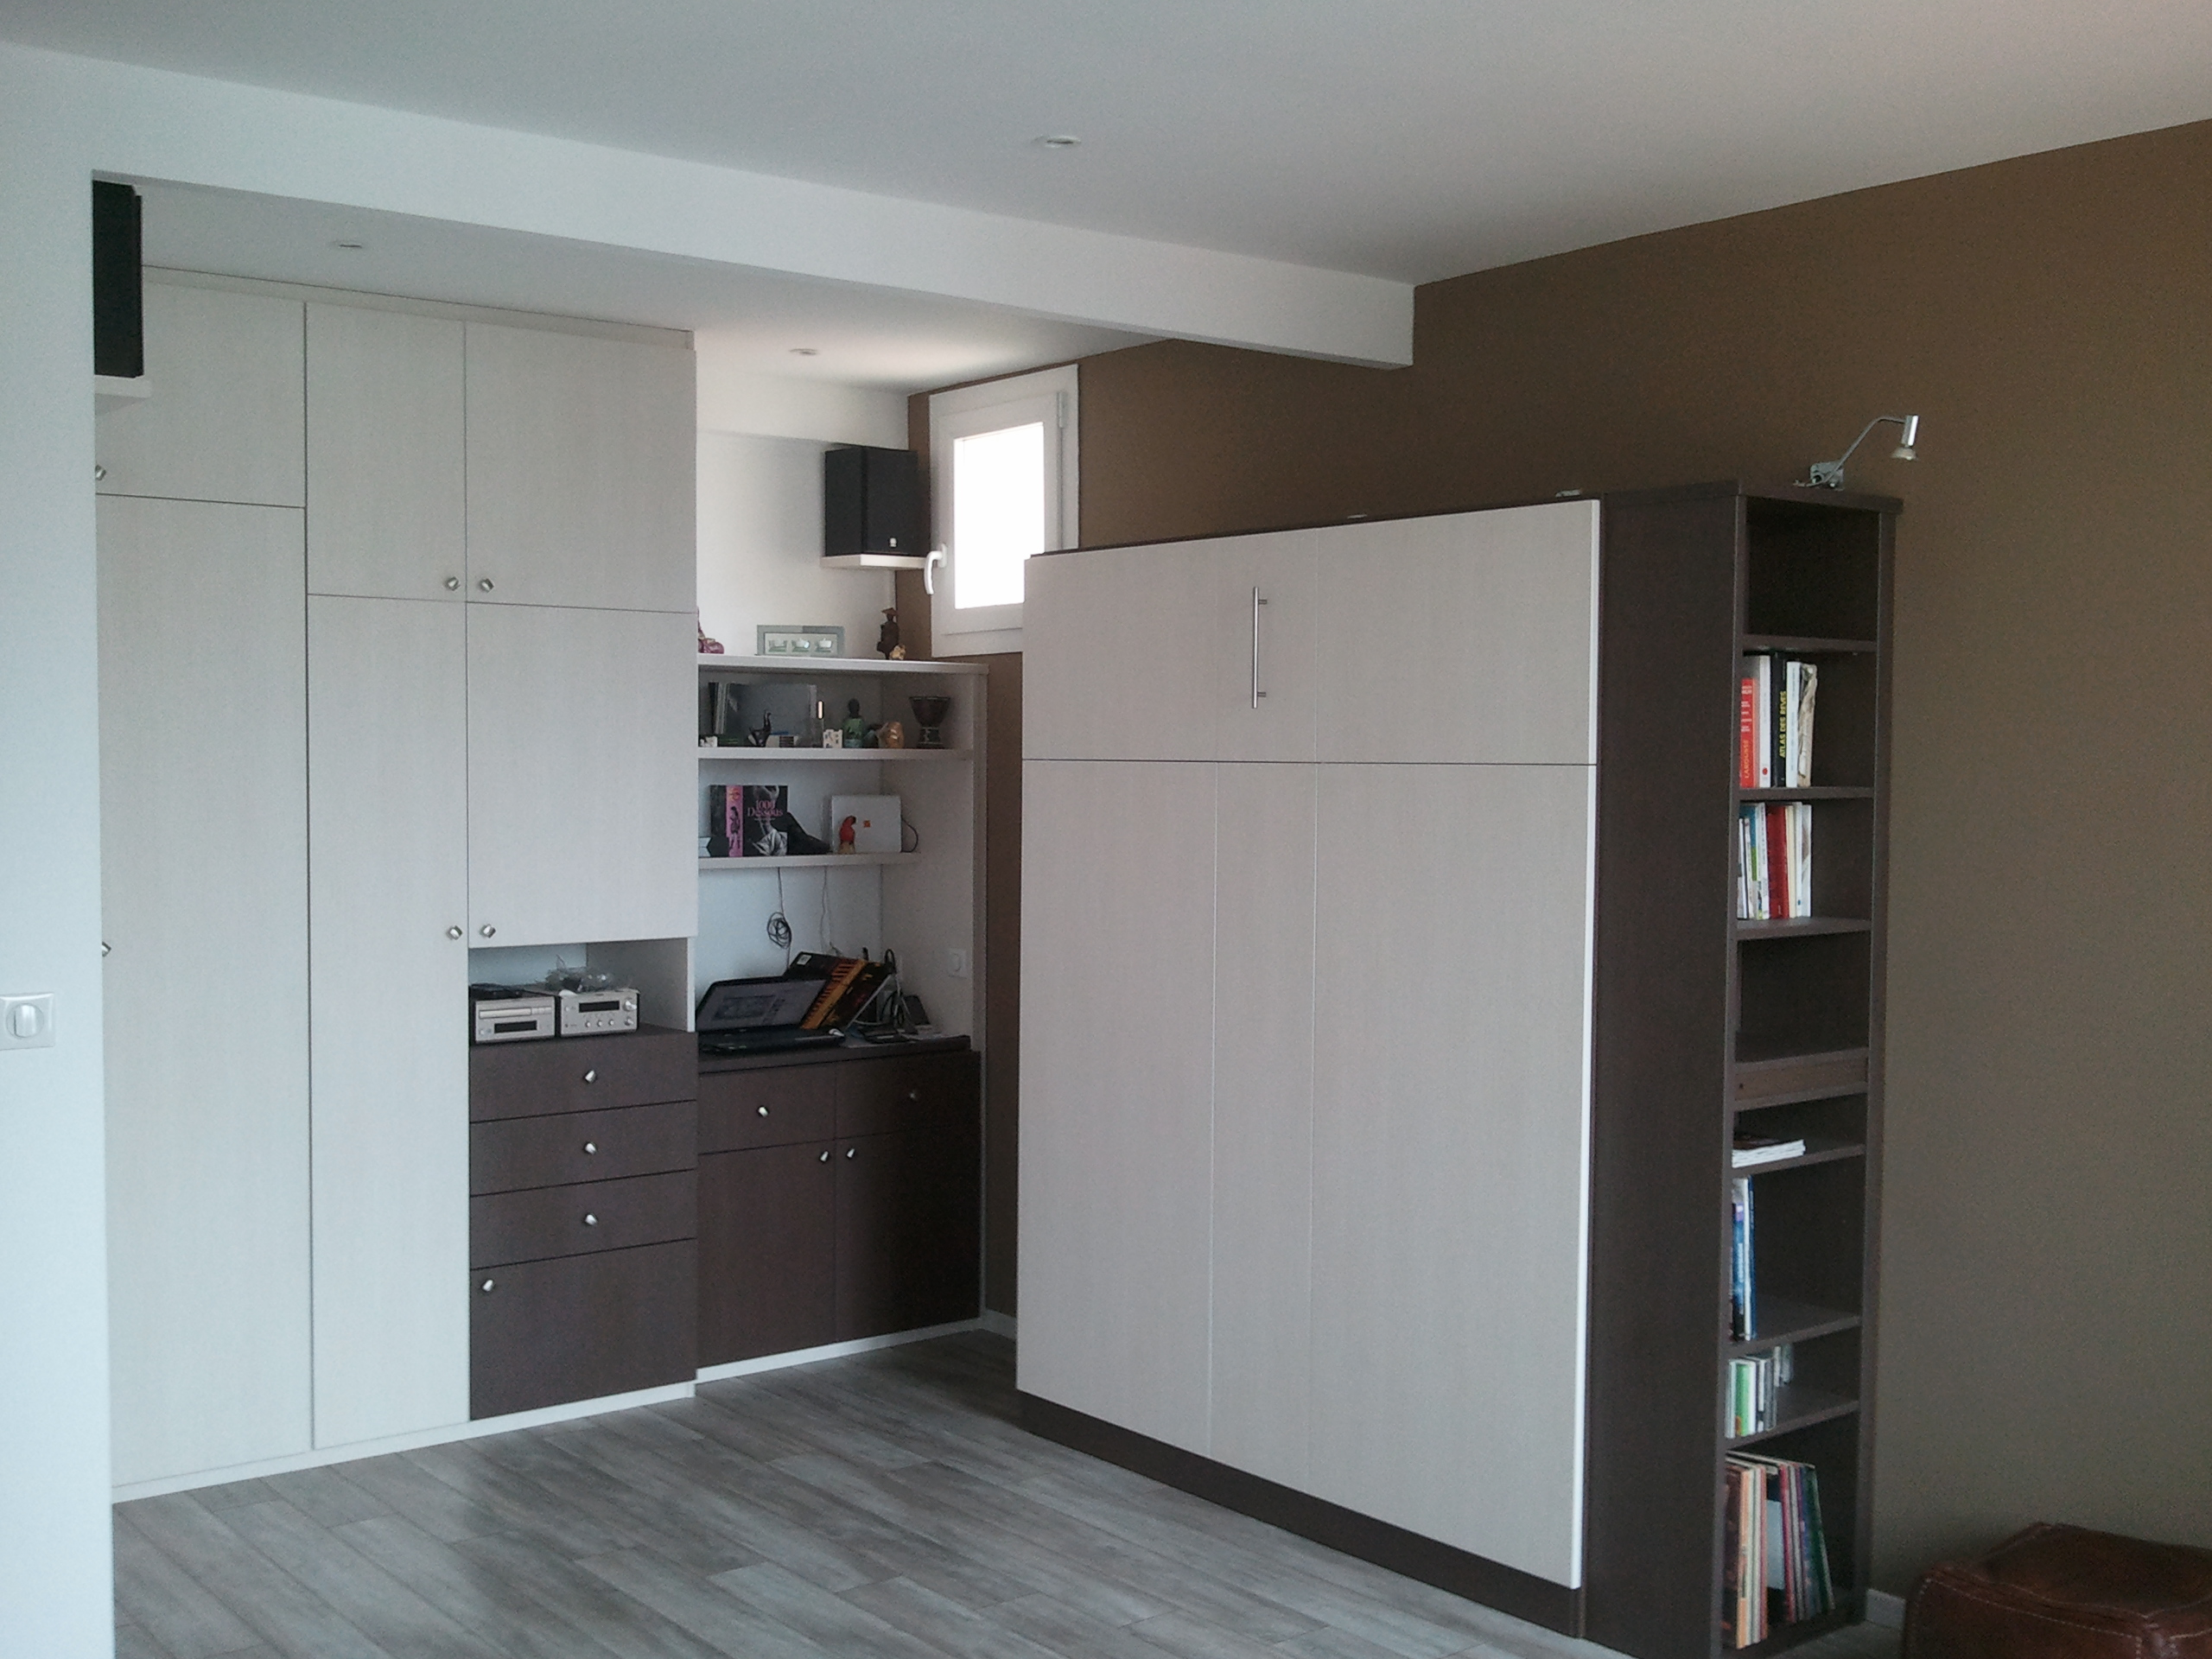 Installation pose dressing concept - Amenagement aanplakbiljet d entree ...